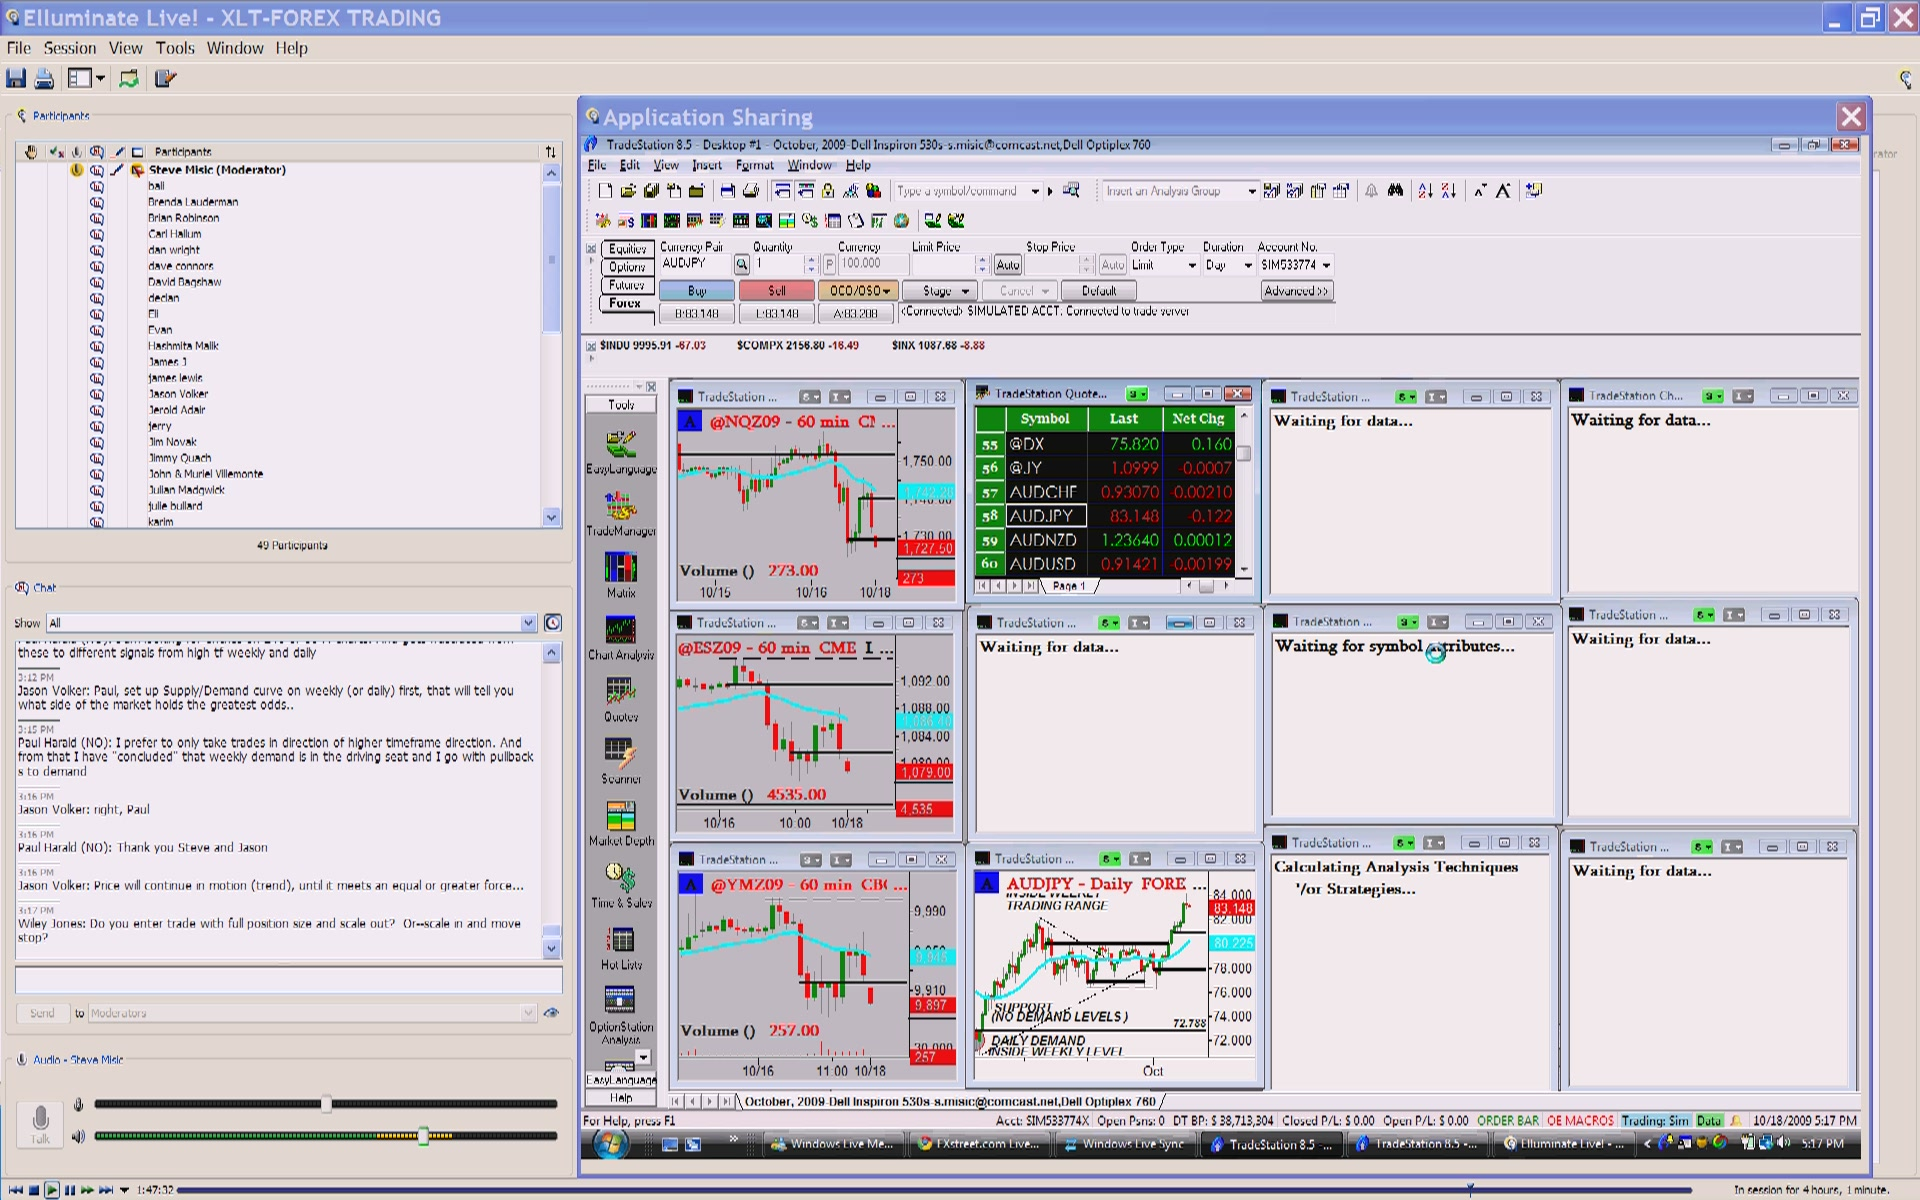 Xlt forex trading download